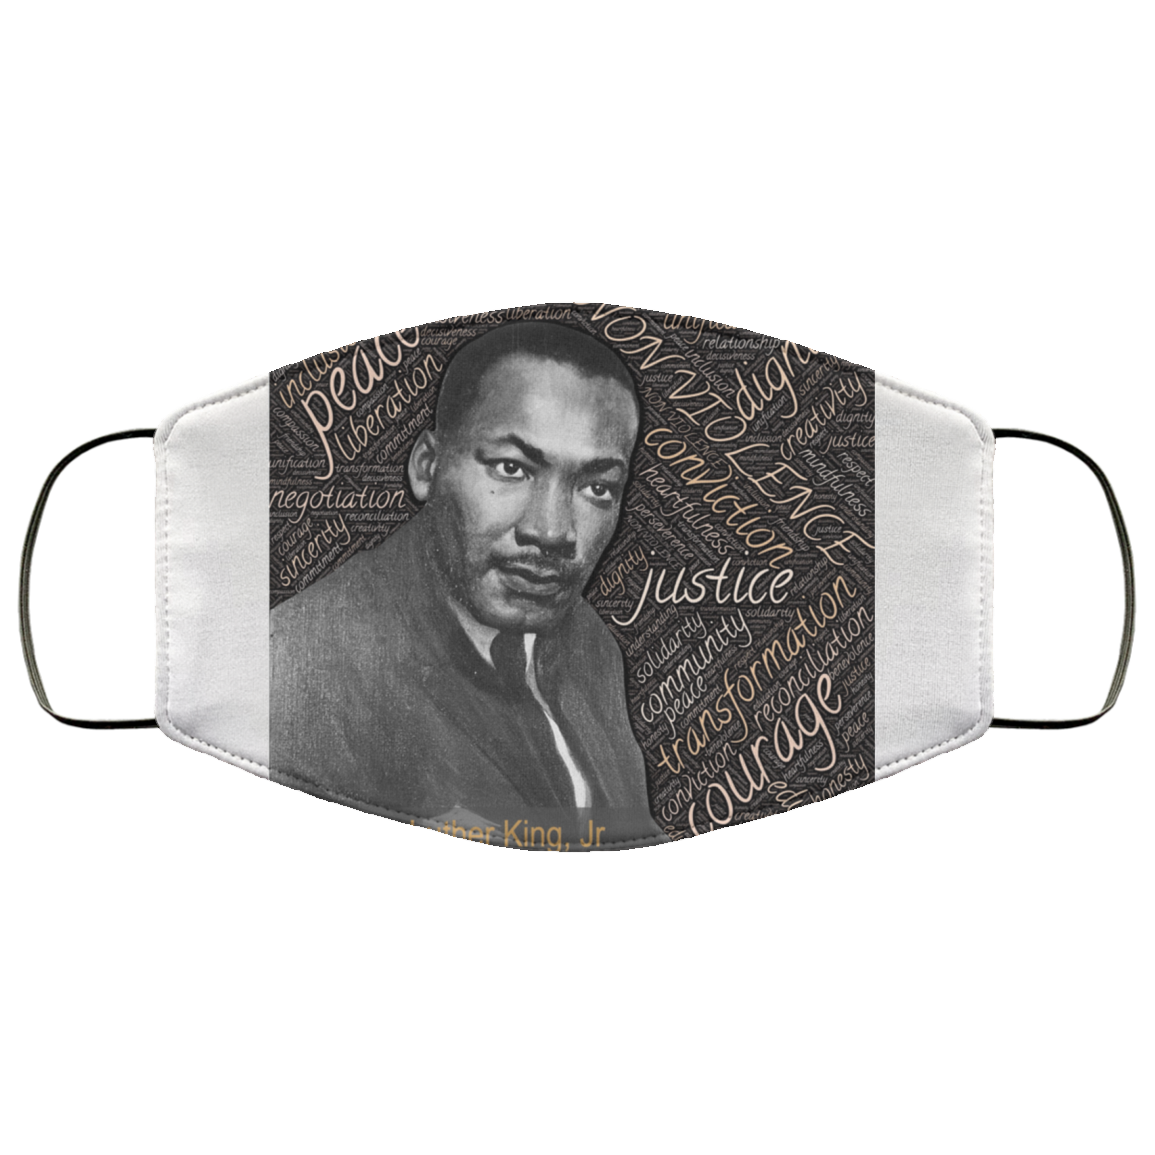 Martin Luther King Jr Face Mask - OMG I Really Want That